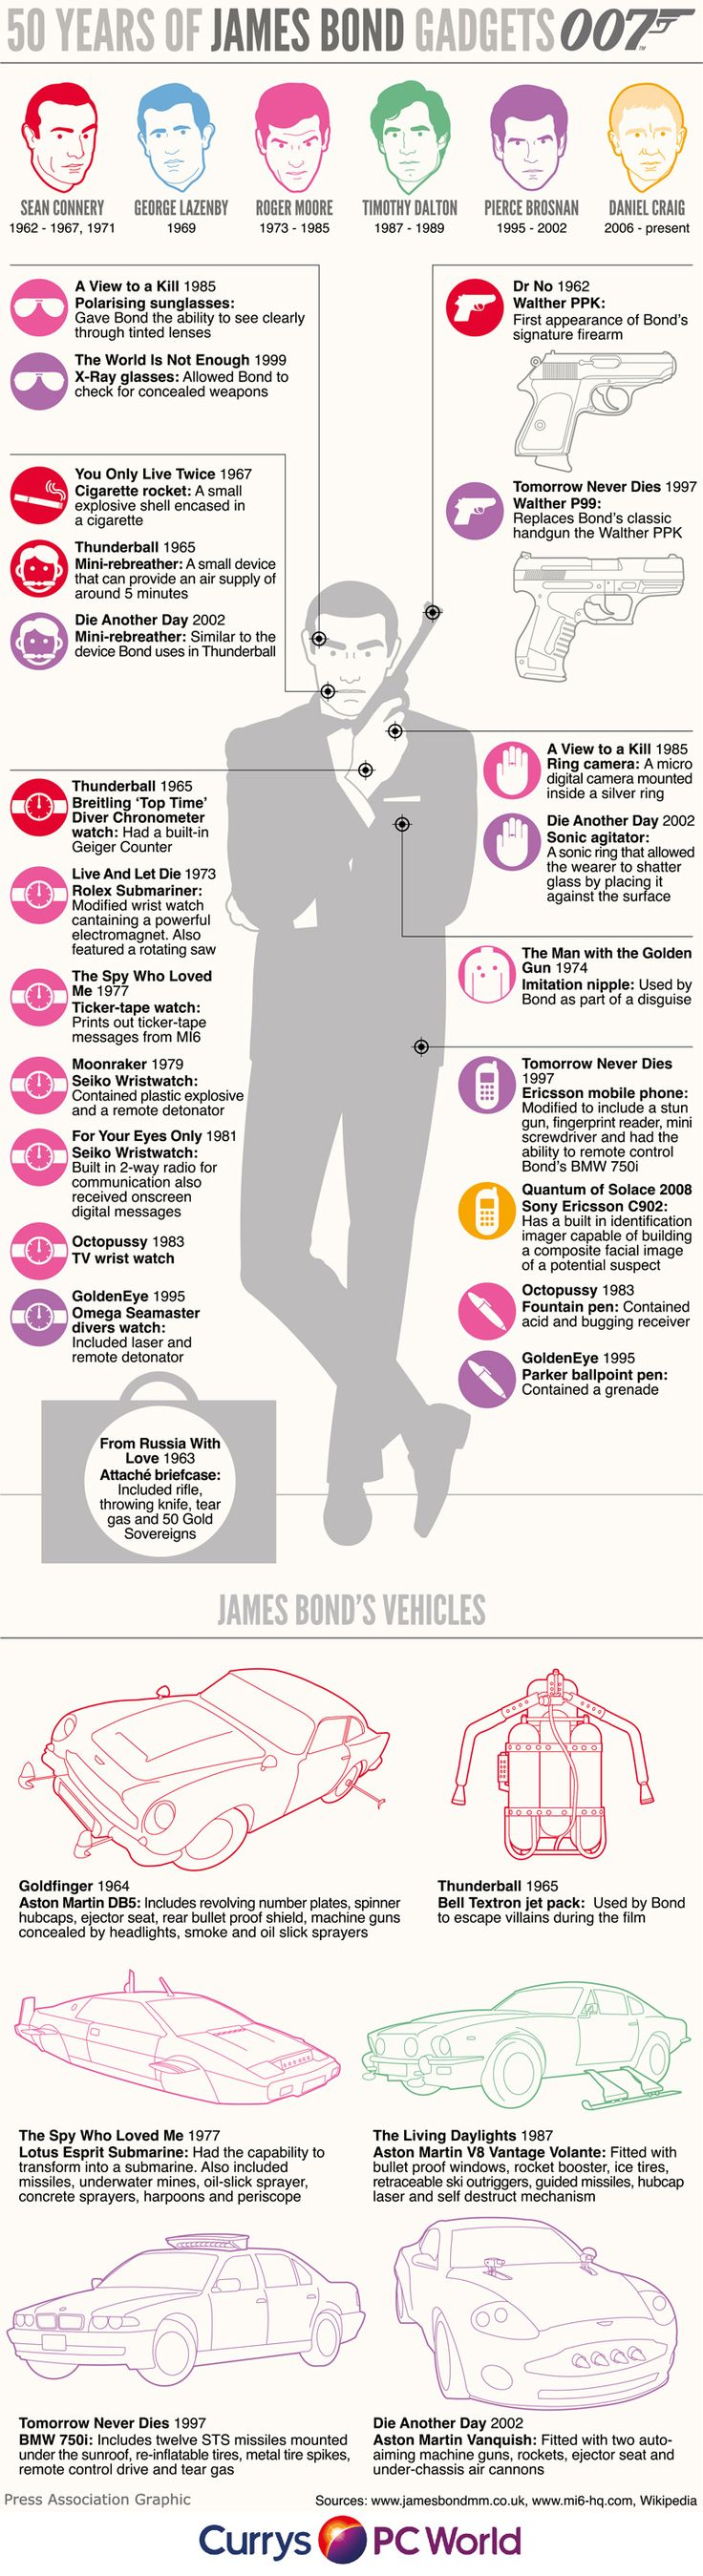 To celebrate 50 years of the 007 movie franchise this infographic looks at Bond's gadgets through the years.